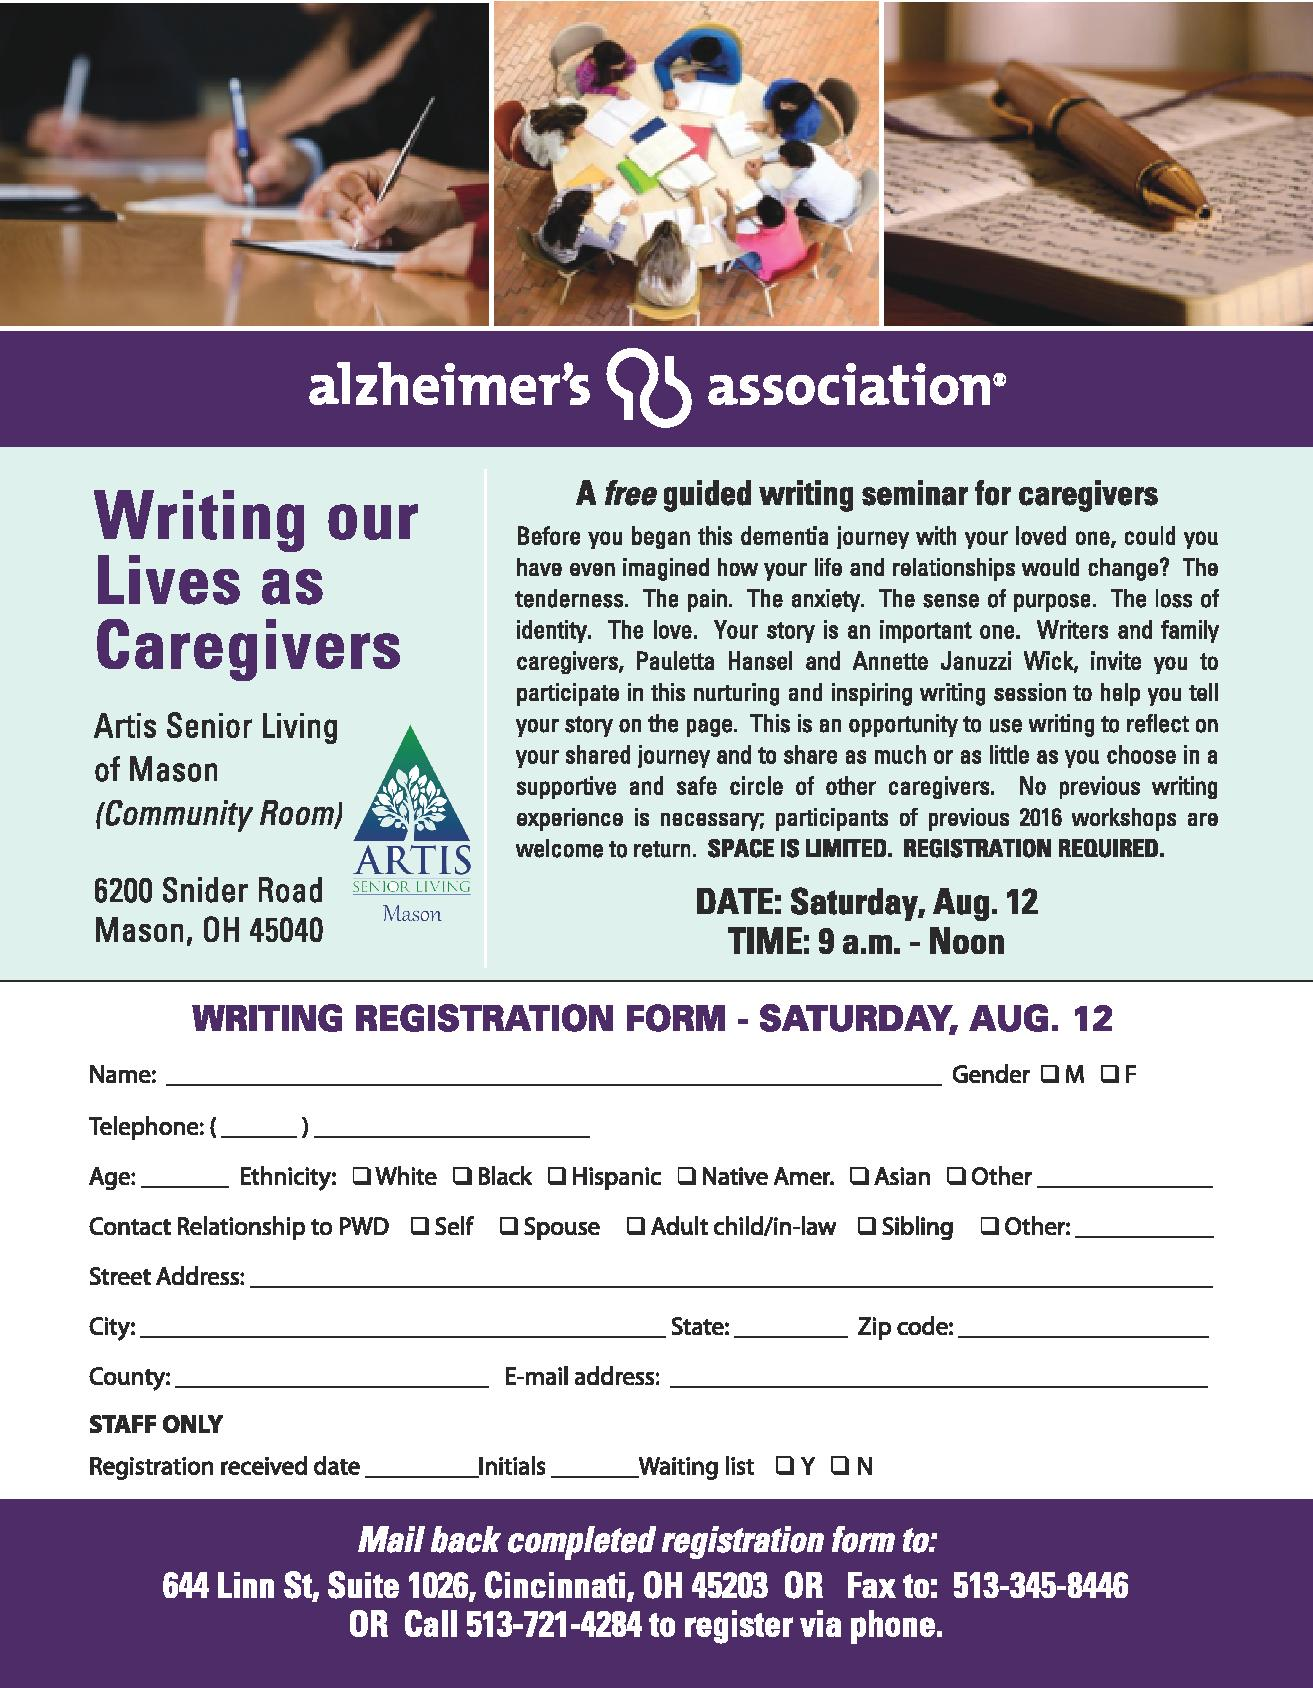 Organizing a Mind – Writing Our Lives as Caregivers Workshop